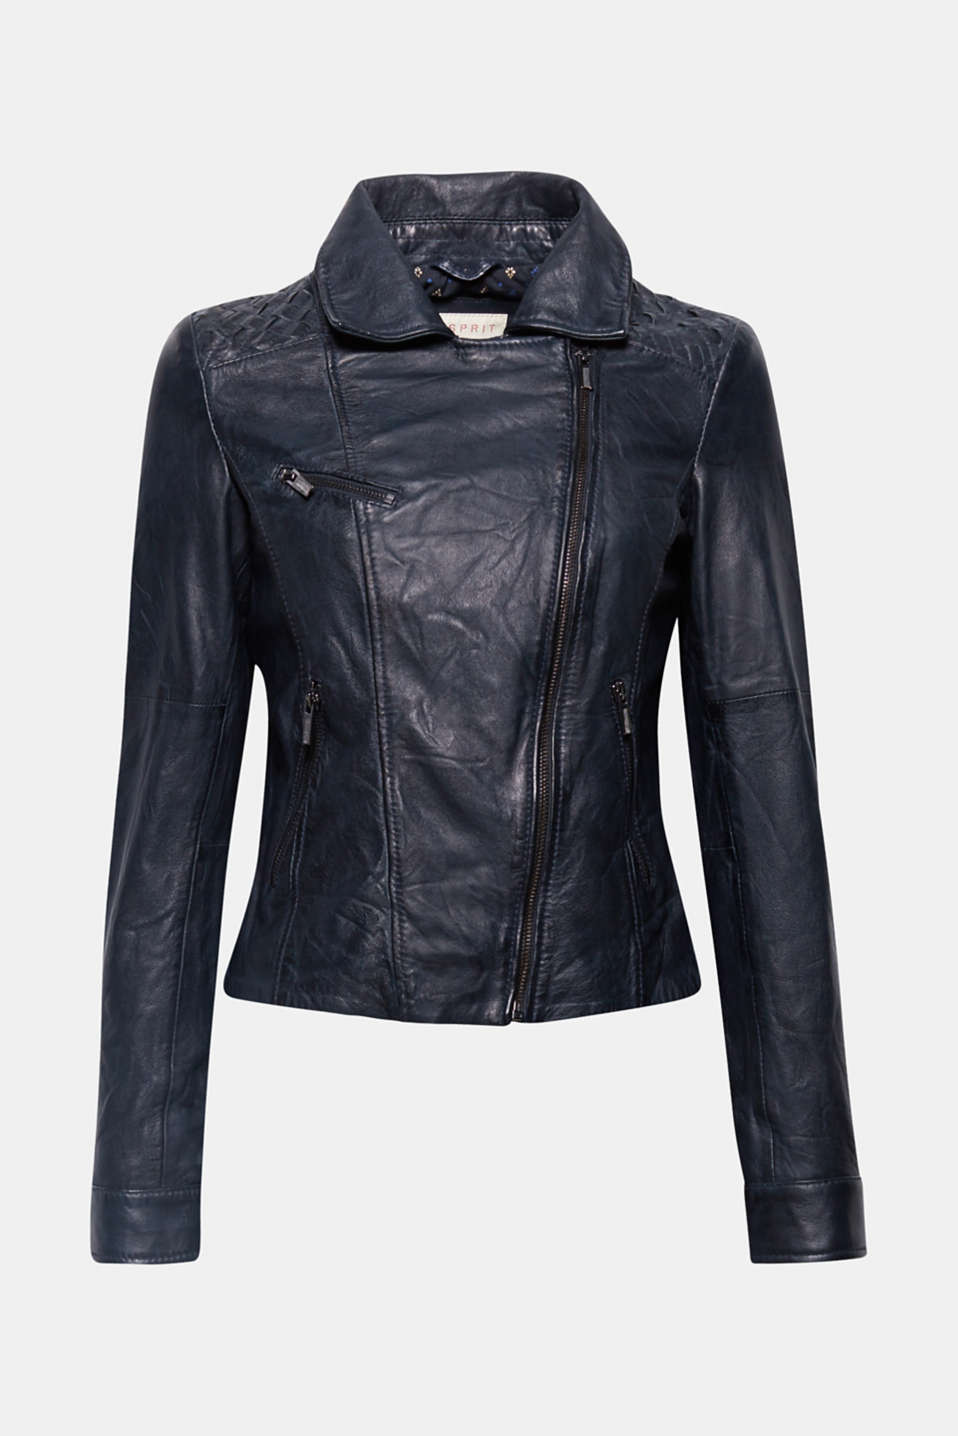 This soft leather jacket in a biker look is a must-have piece which gives our wardrobe the injection of coolness it needs.